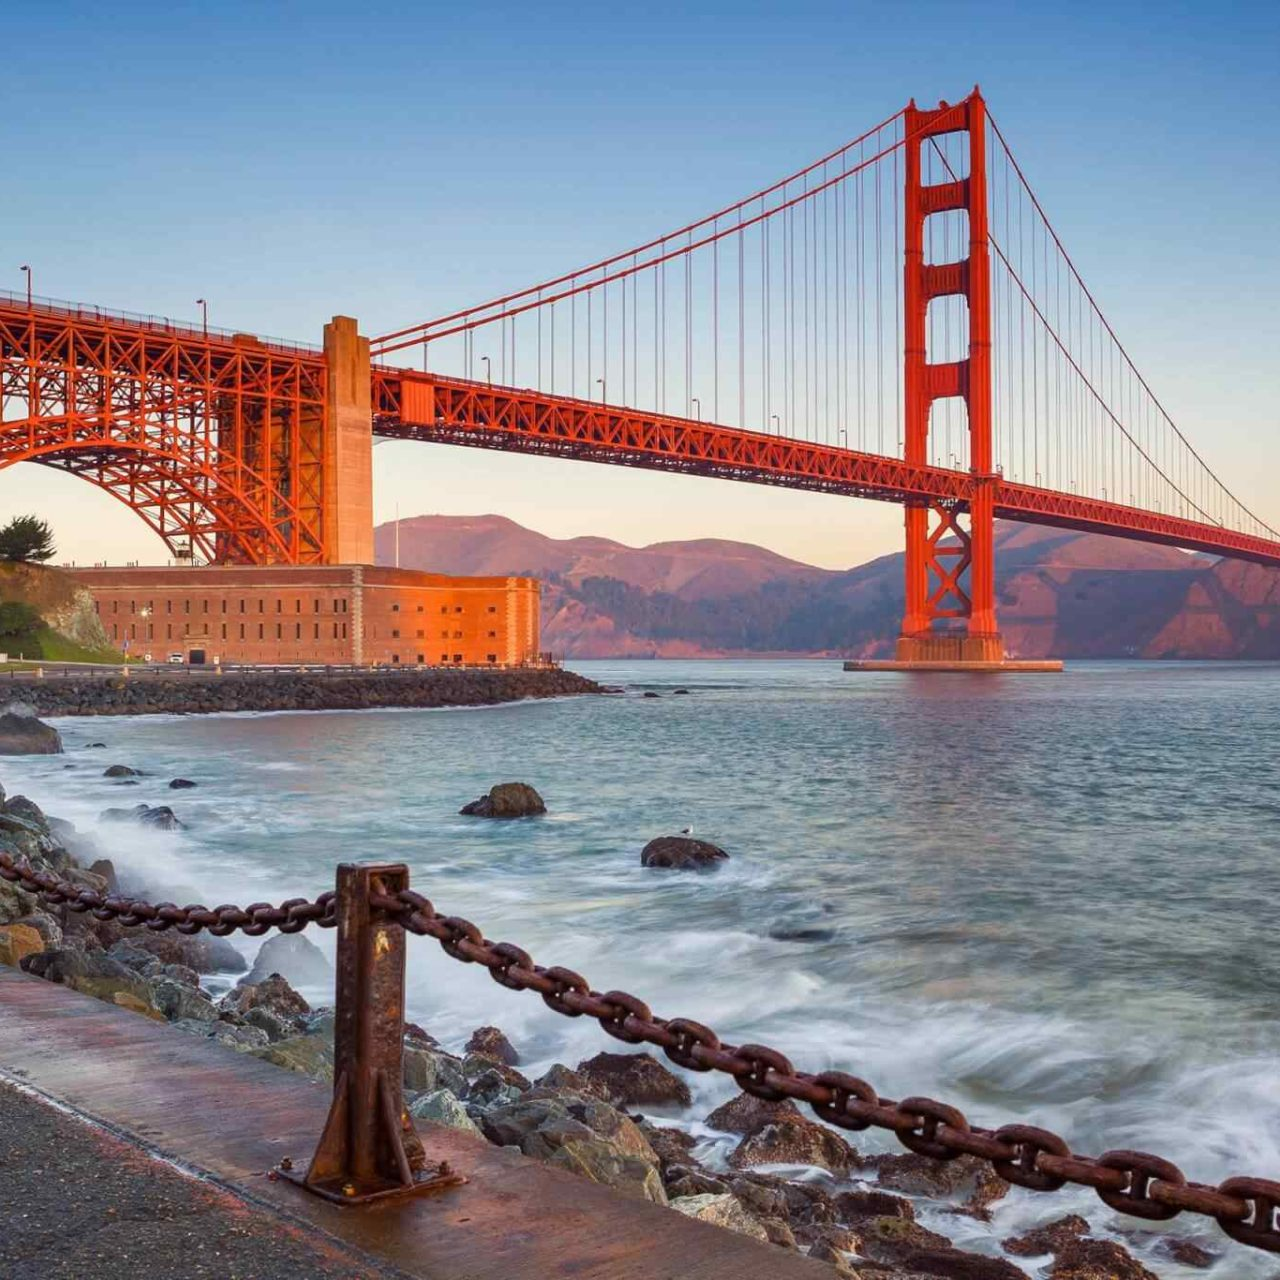 https://www.touripp.it/wp-content/uploads/2018/09/destination-san-francisco-01-1280x1280.jpg